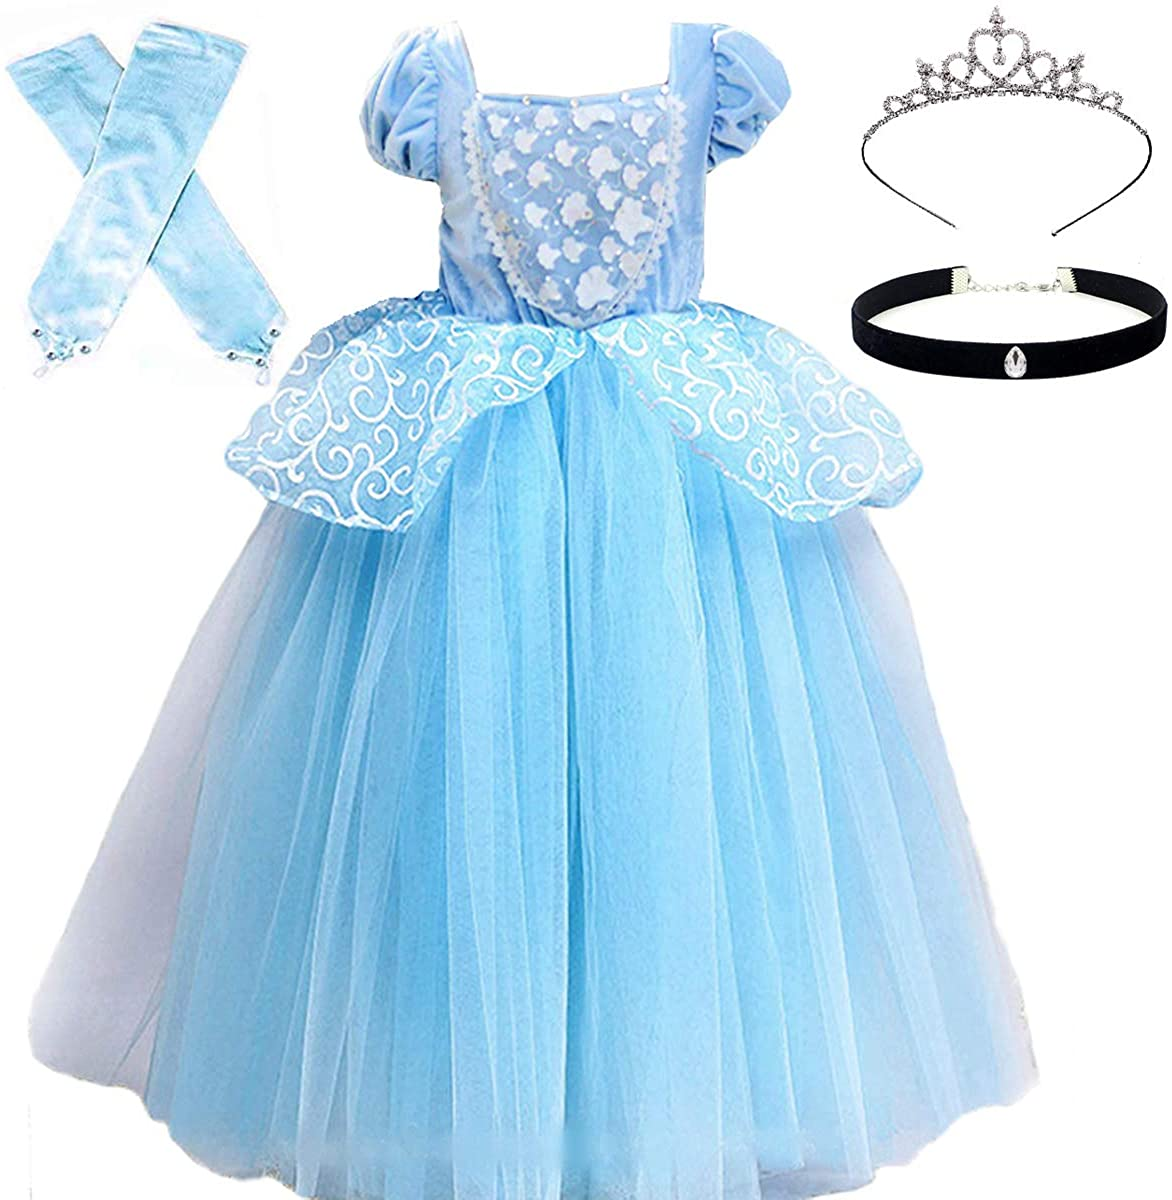 Cinderella Costumes Girls Princess Dress Up Fancy Halloween Christmas Party with Tiara and Choker Set